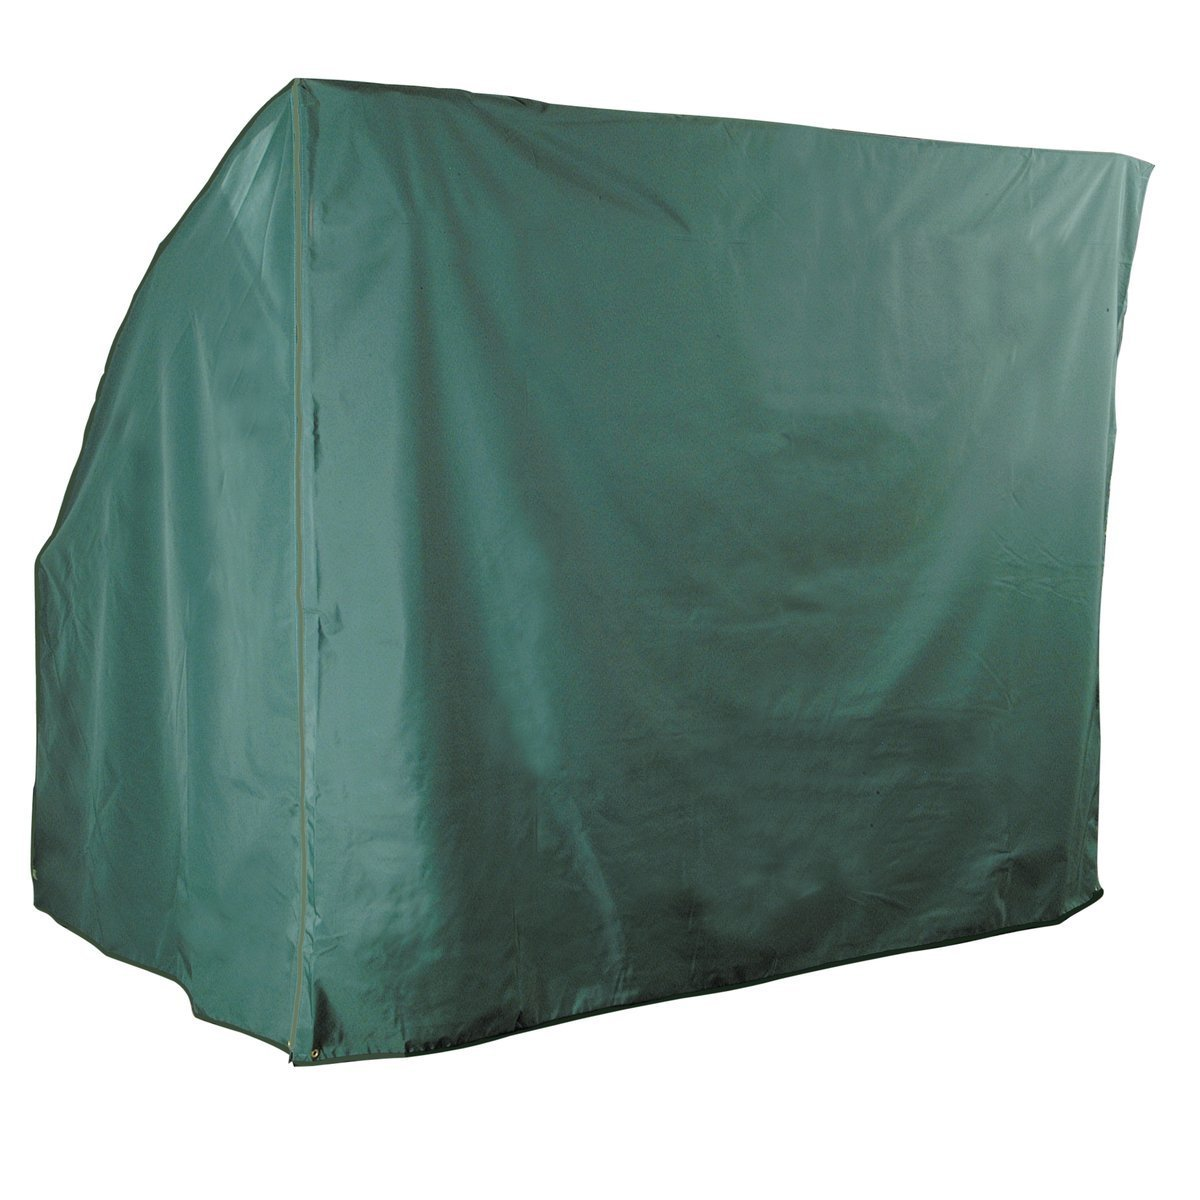 Bosmere C510 Waterproof Swing Seat Cover, 96'' x 57'' x 67'', Green